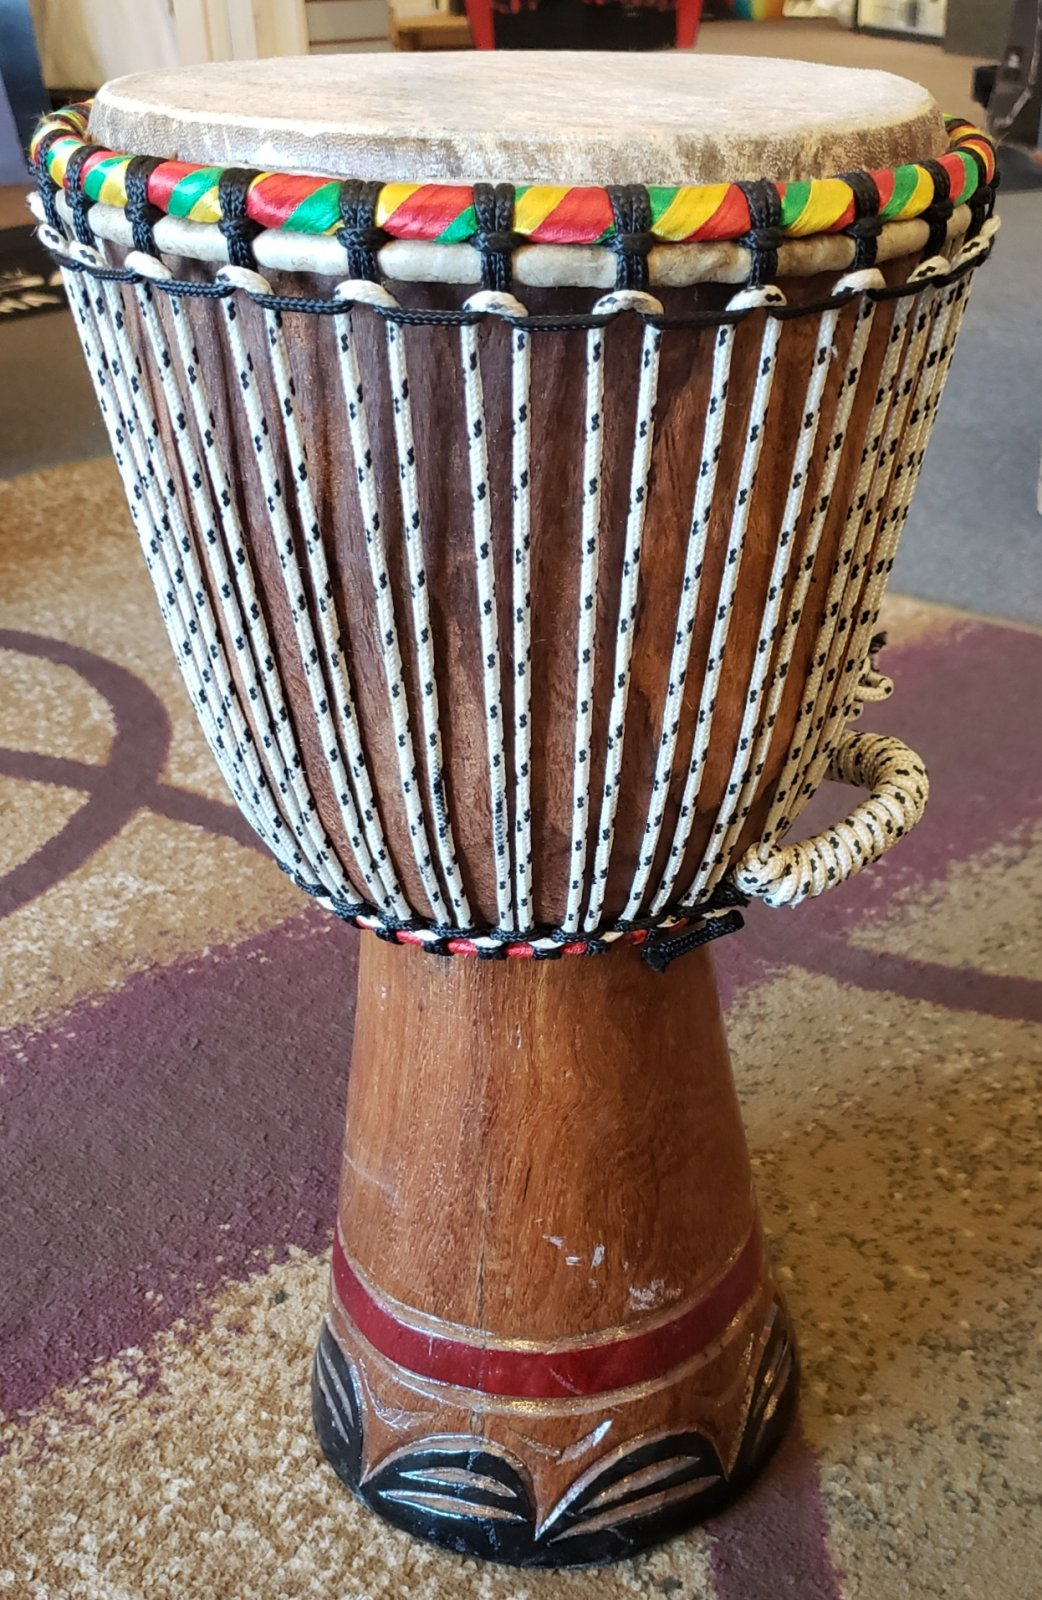 AFRICAN DJEMBE LARGE SIZE HAND DRUM